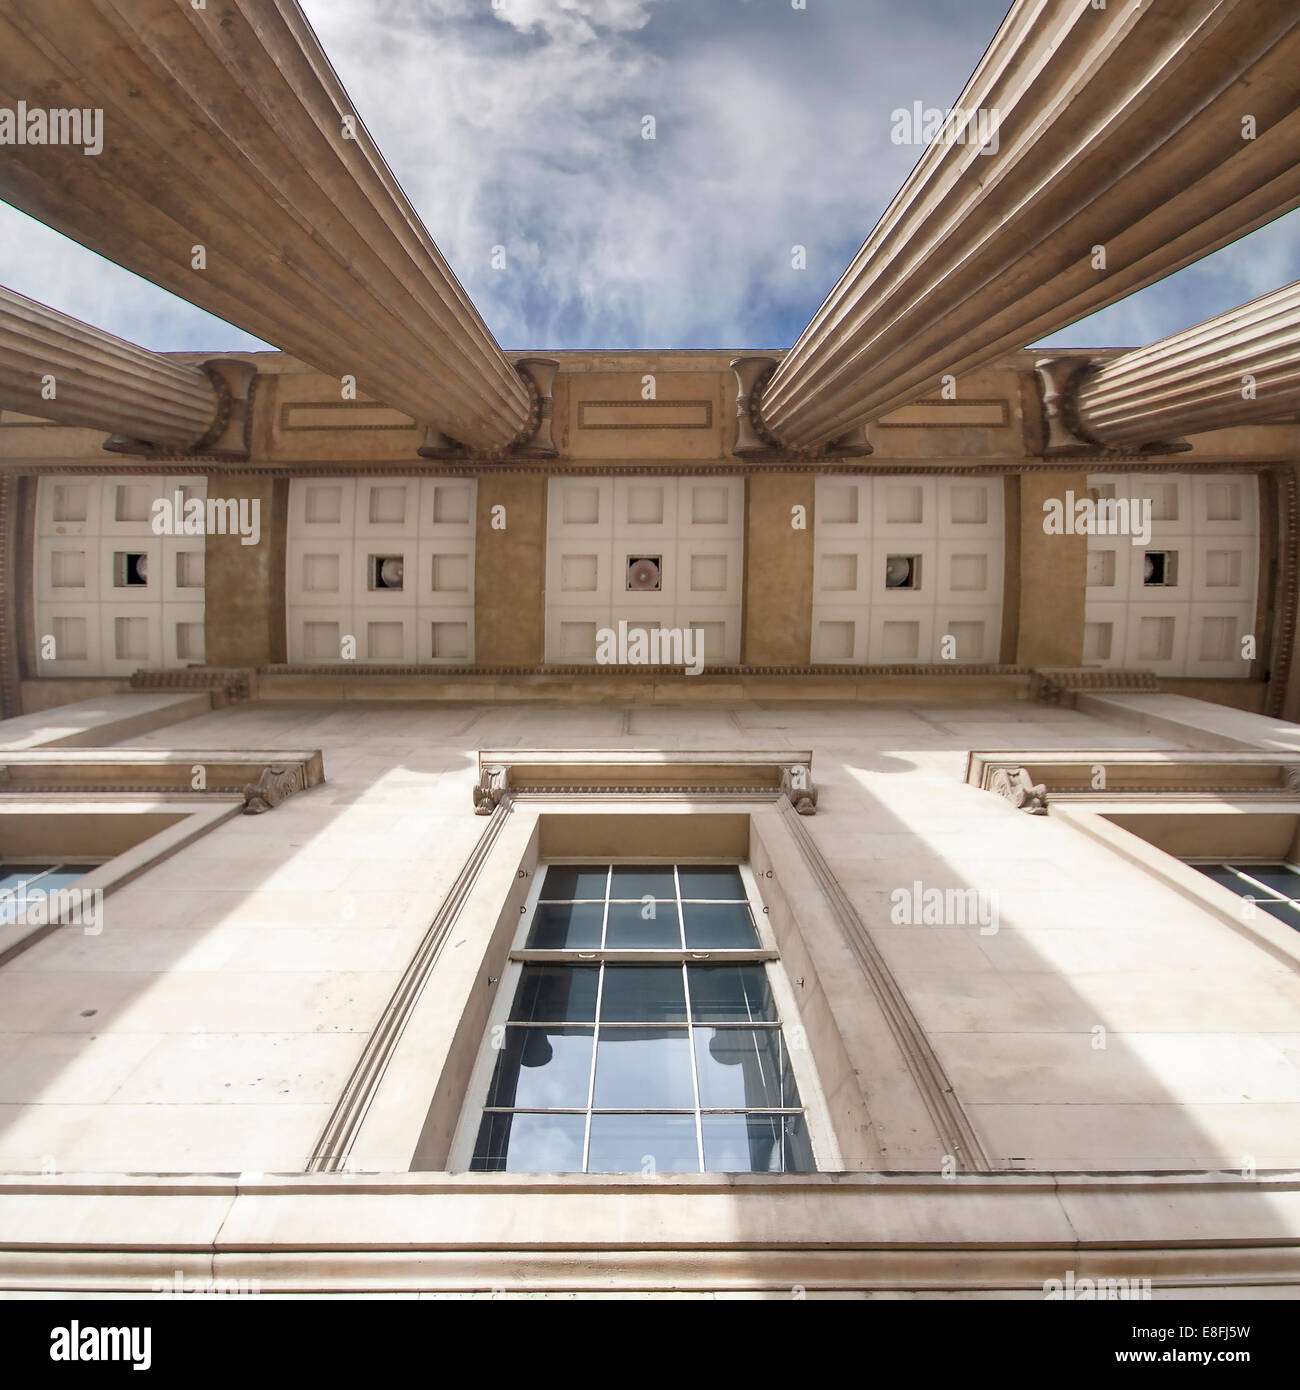 UK, England, London, Low angle view of British Museum - Stock Image